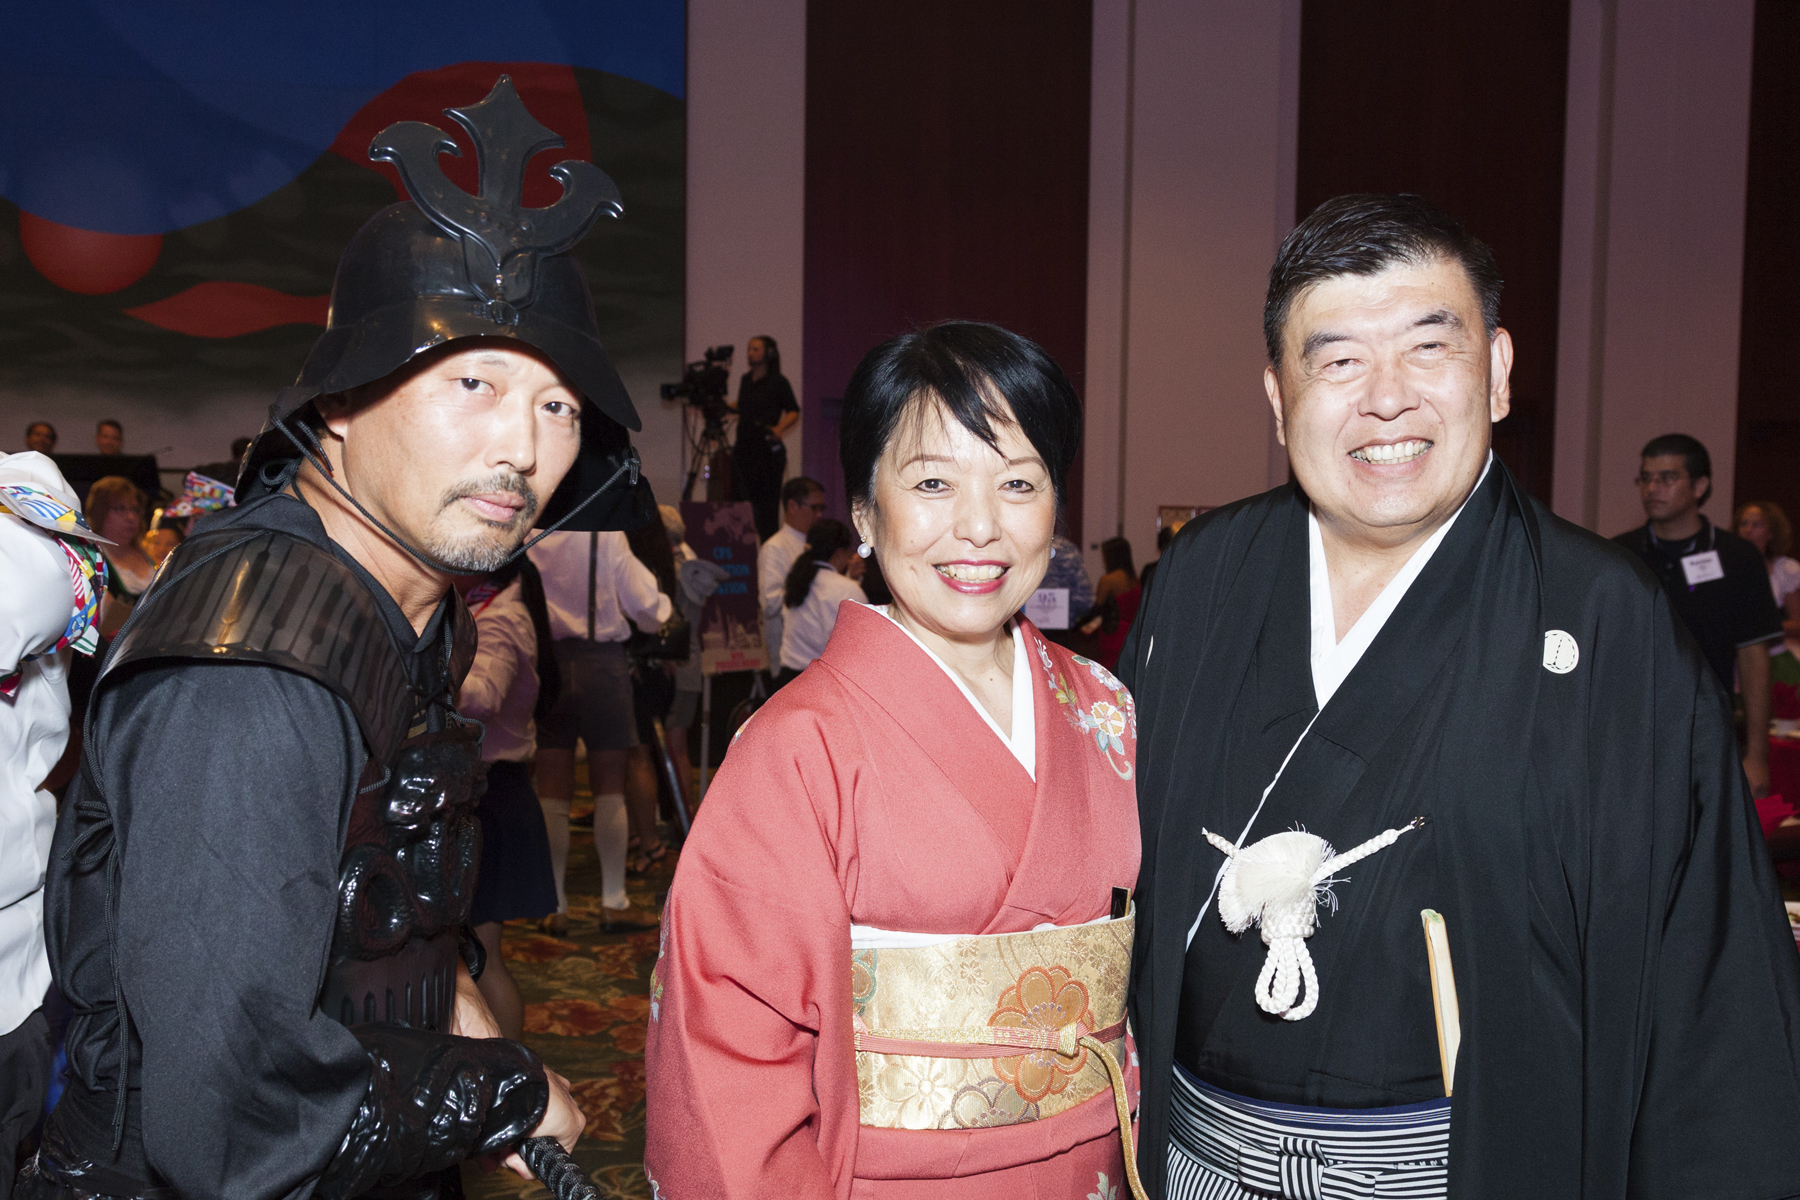 2016 AN EVENING AROUND THE WORLD: Getting into theme with Ruthann & Gregg Yamanaka and their samurai escort!